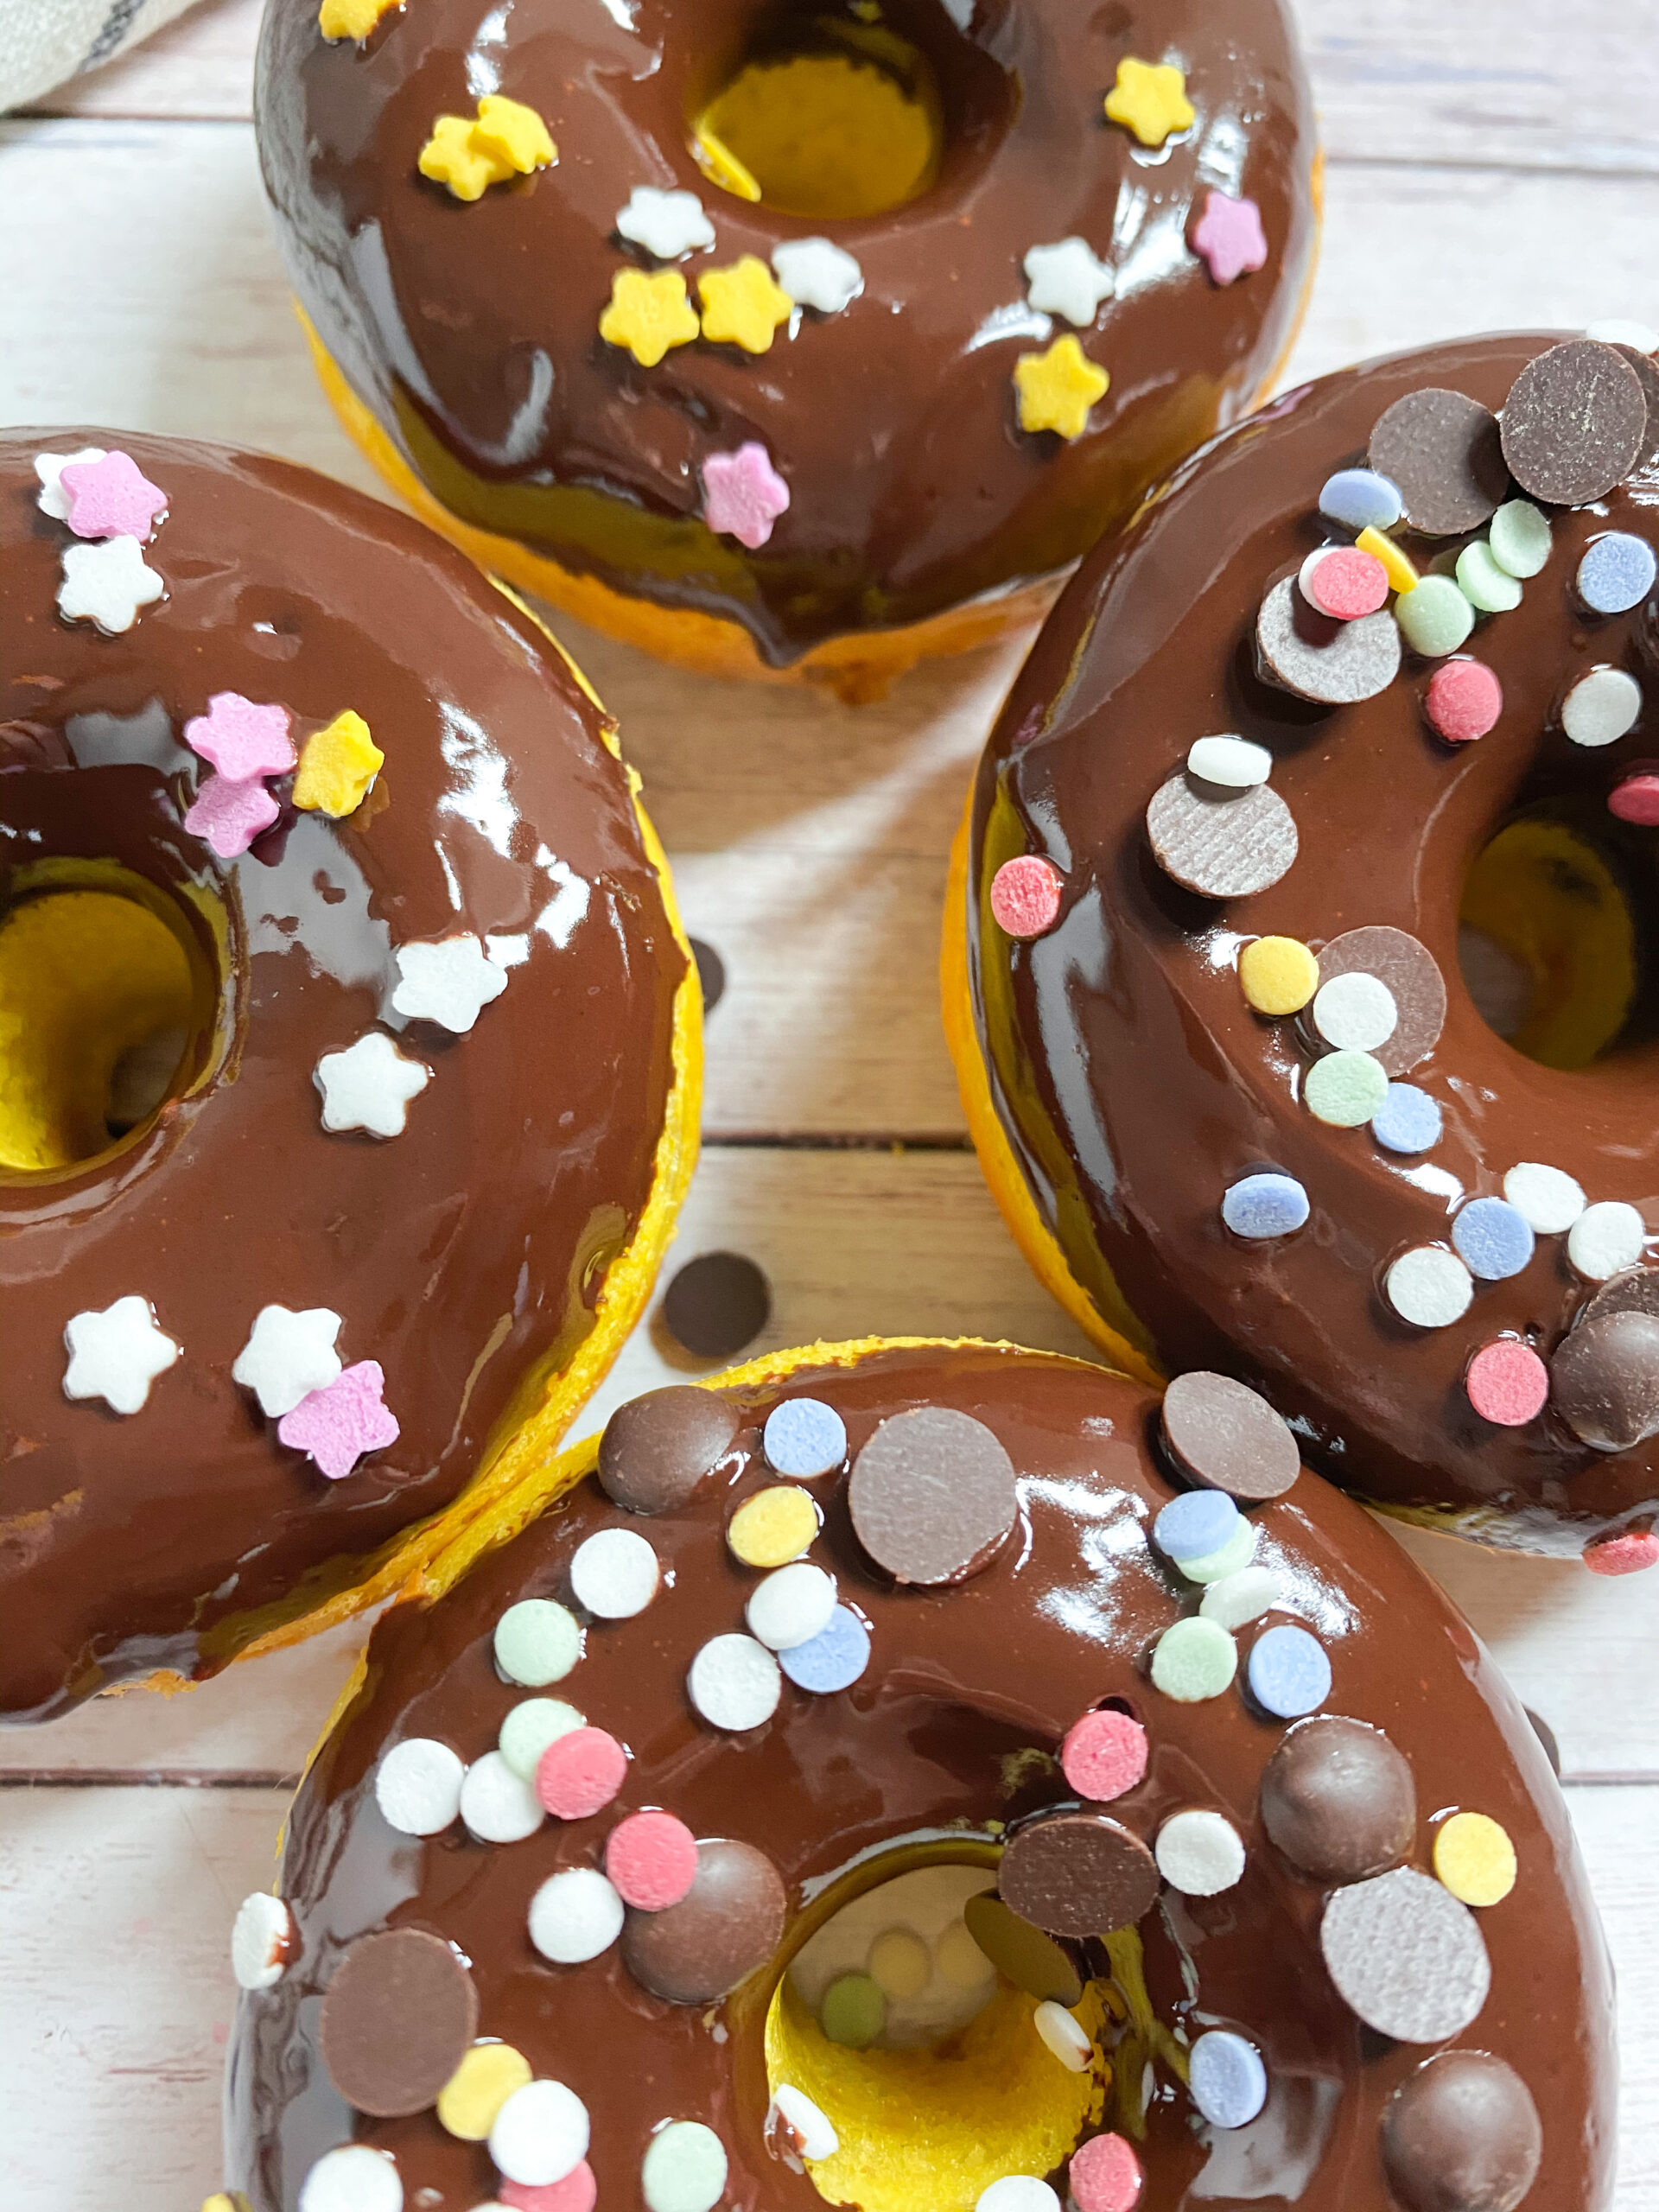 Picture of glazed low carb donuts with chocolate chips